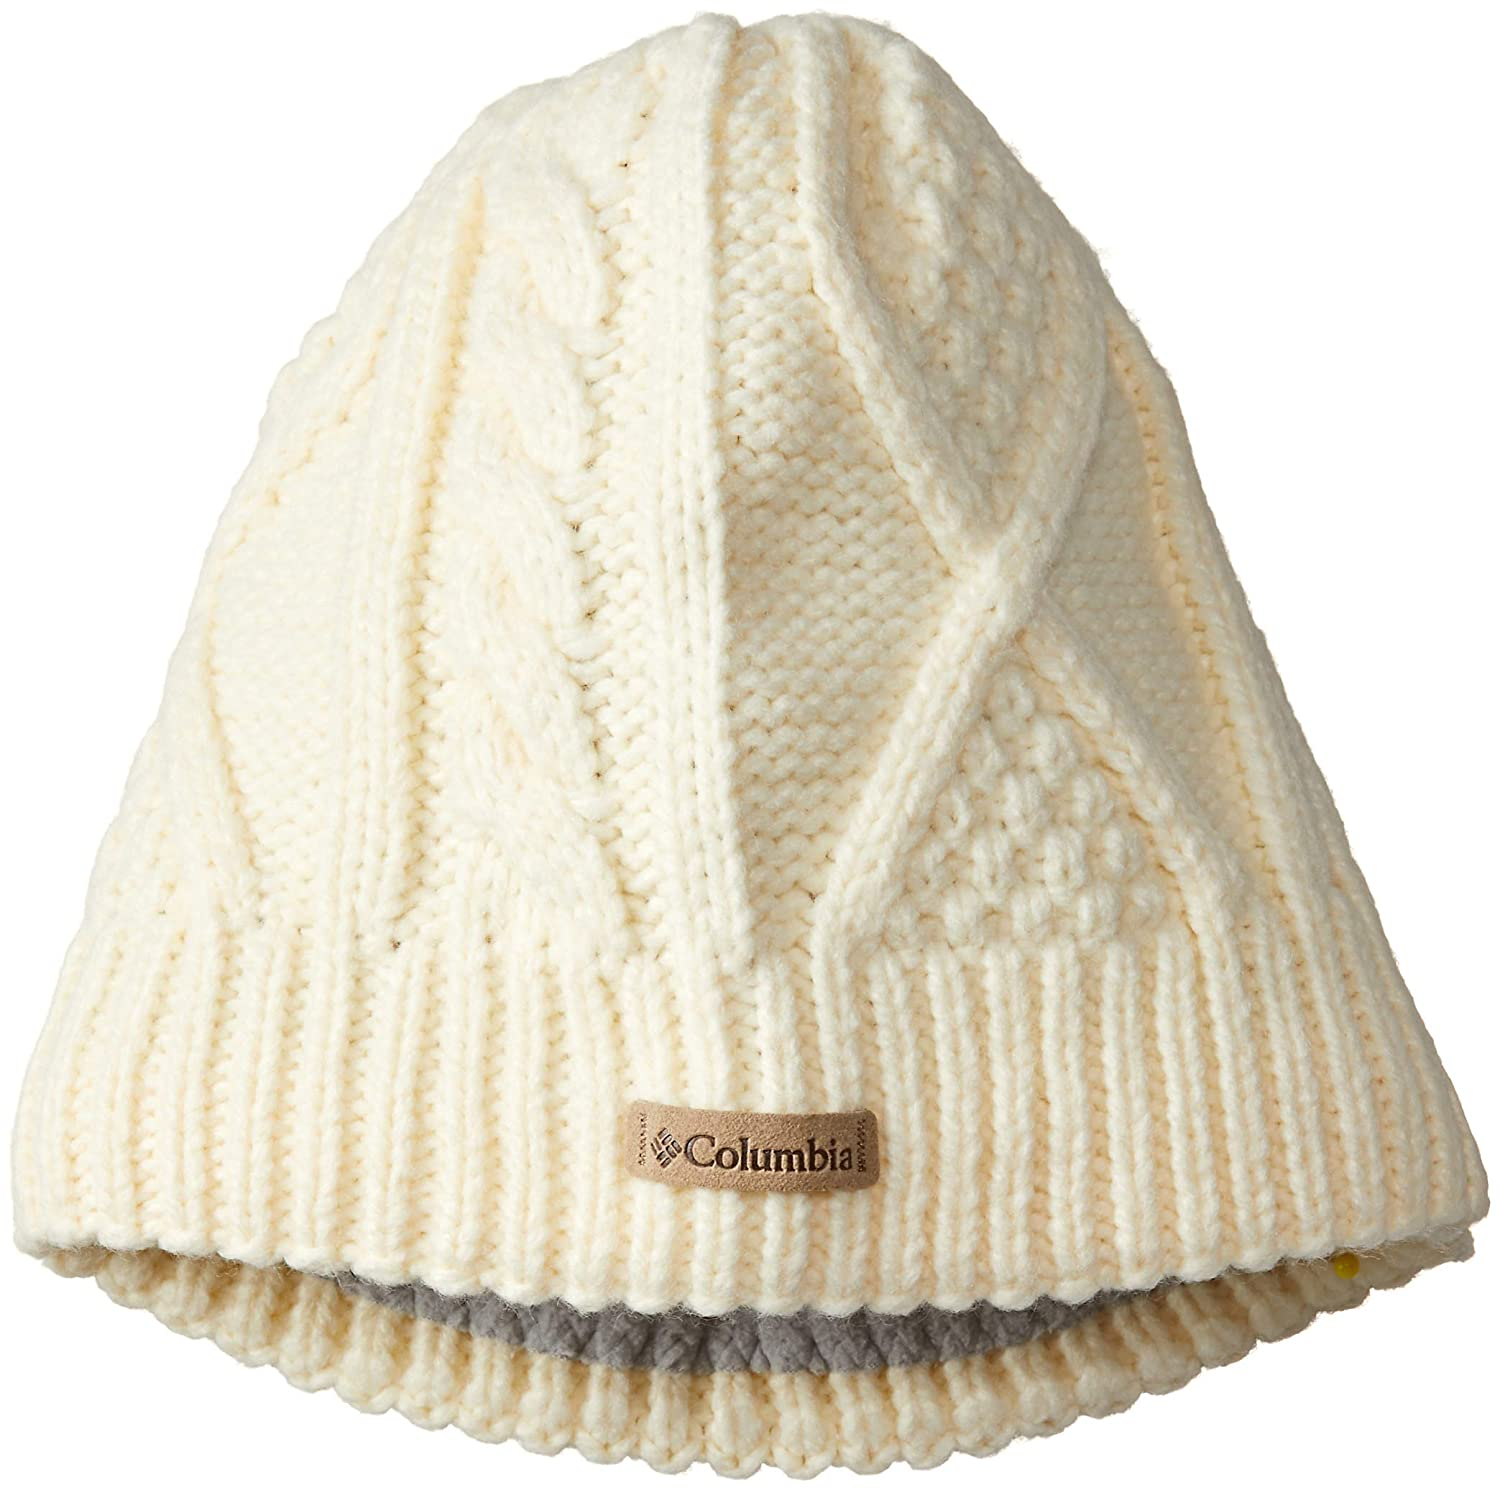 dc83906473dbc Columbia s Women s Cabled Cutie Beanie at Amazon Women s Clothing store